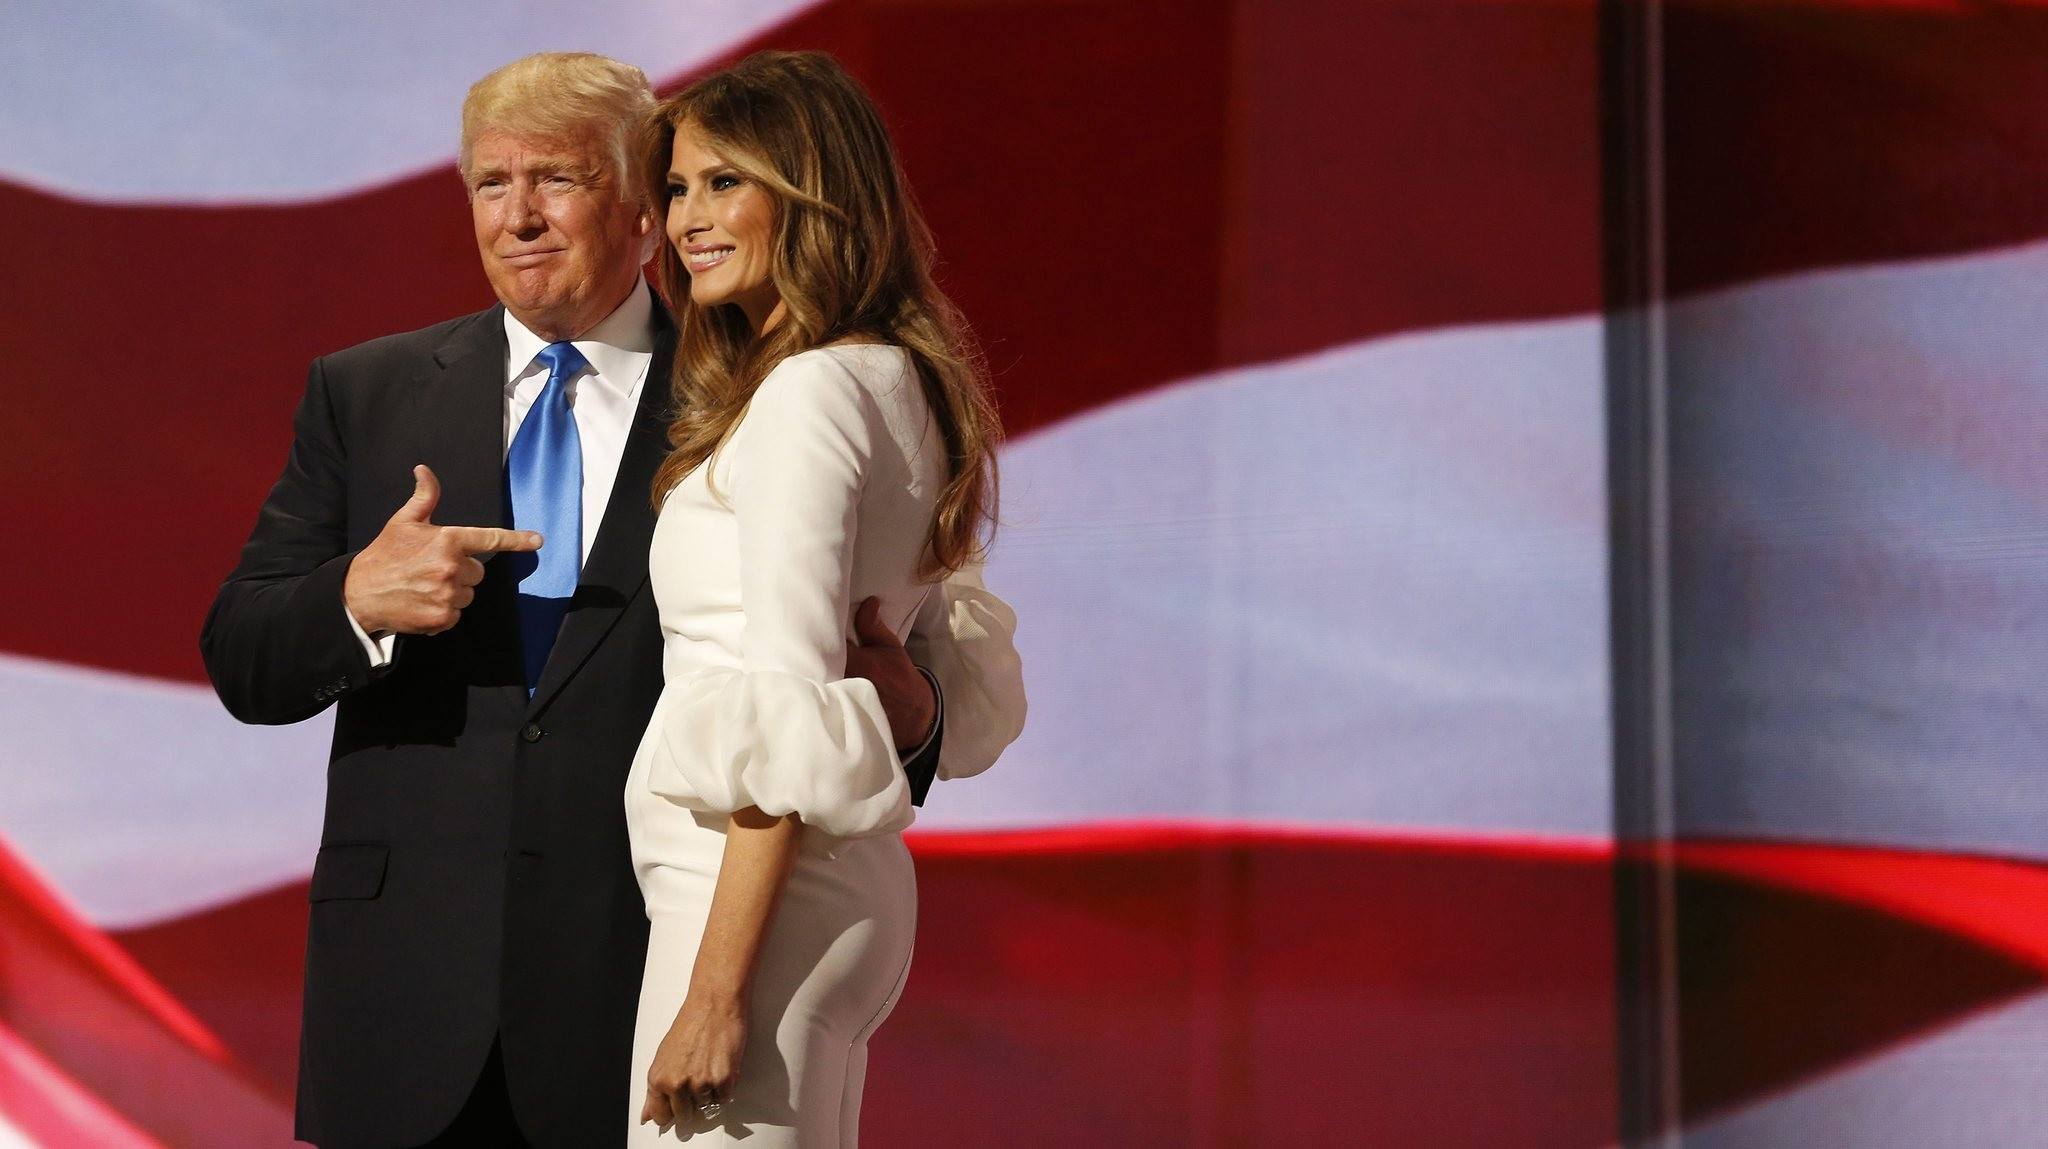 Donald Trump (L) escorts his wife Melania (R) after her speech during the second session on the first day of the 2016 Republican National Convention at Quicken Loans Arena in Cleveland, 18 July 2016. (EPA Photo)